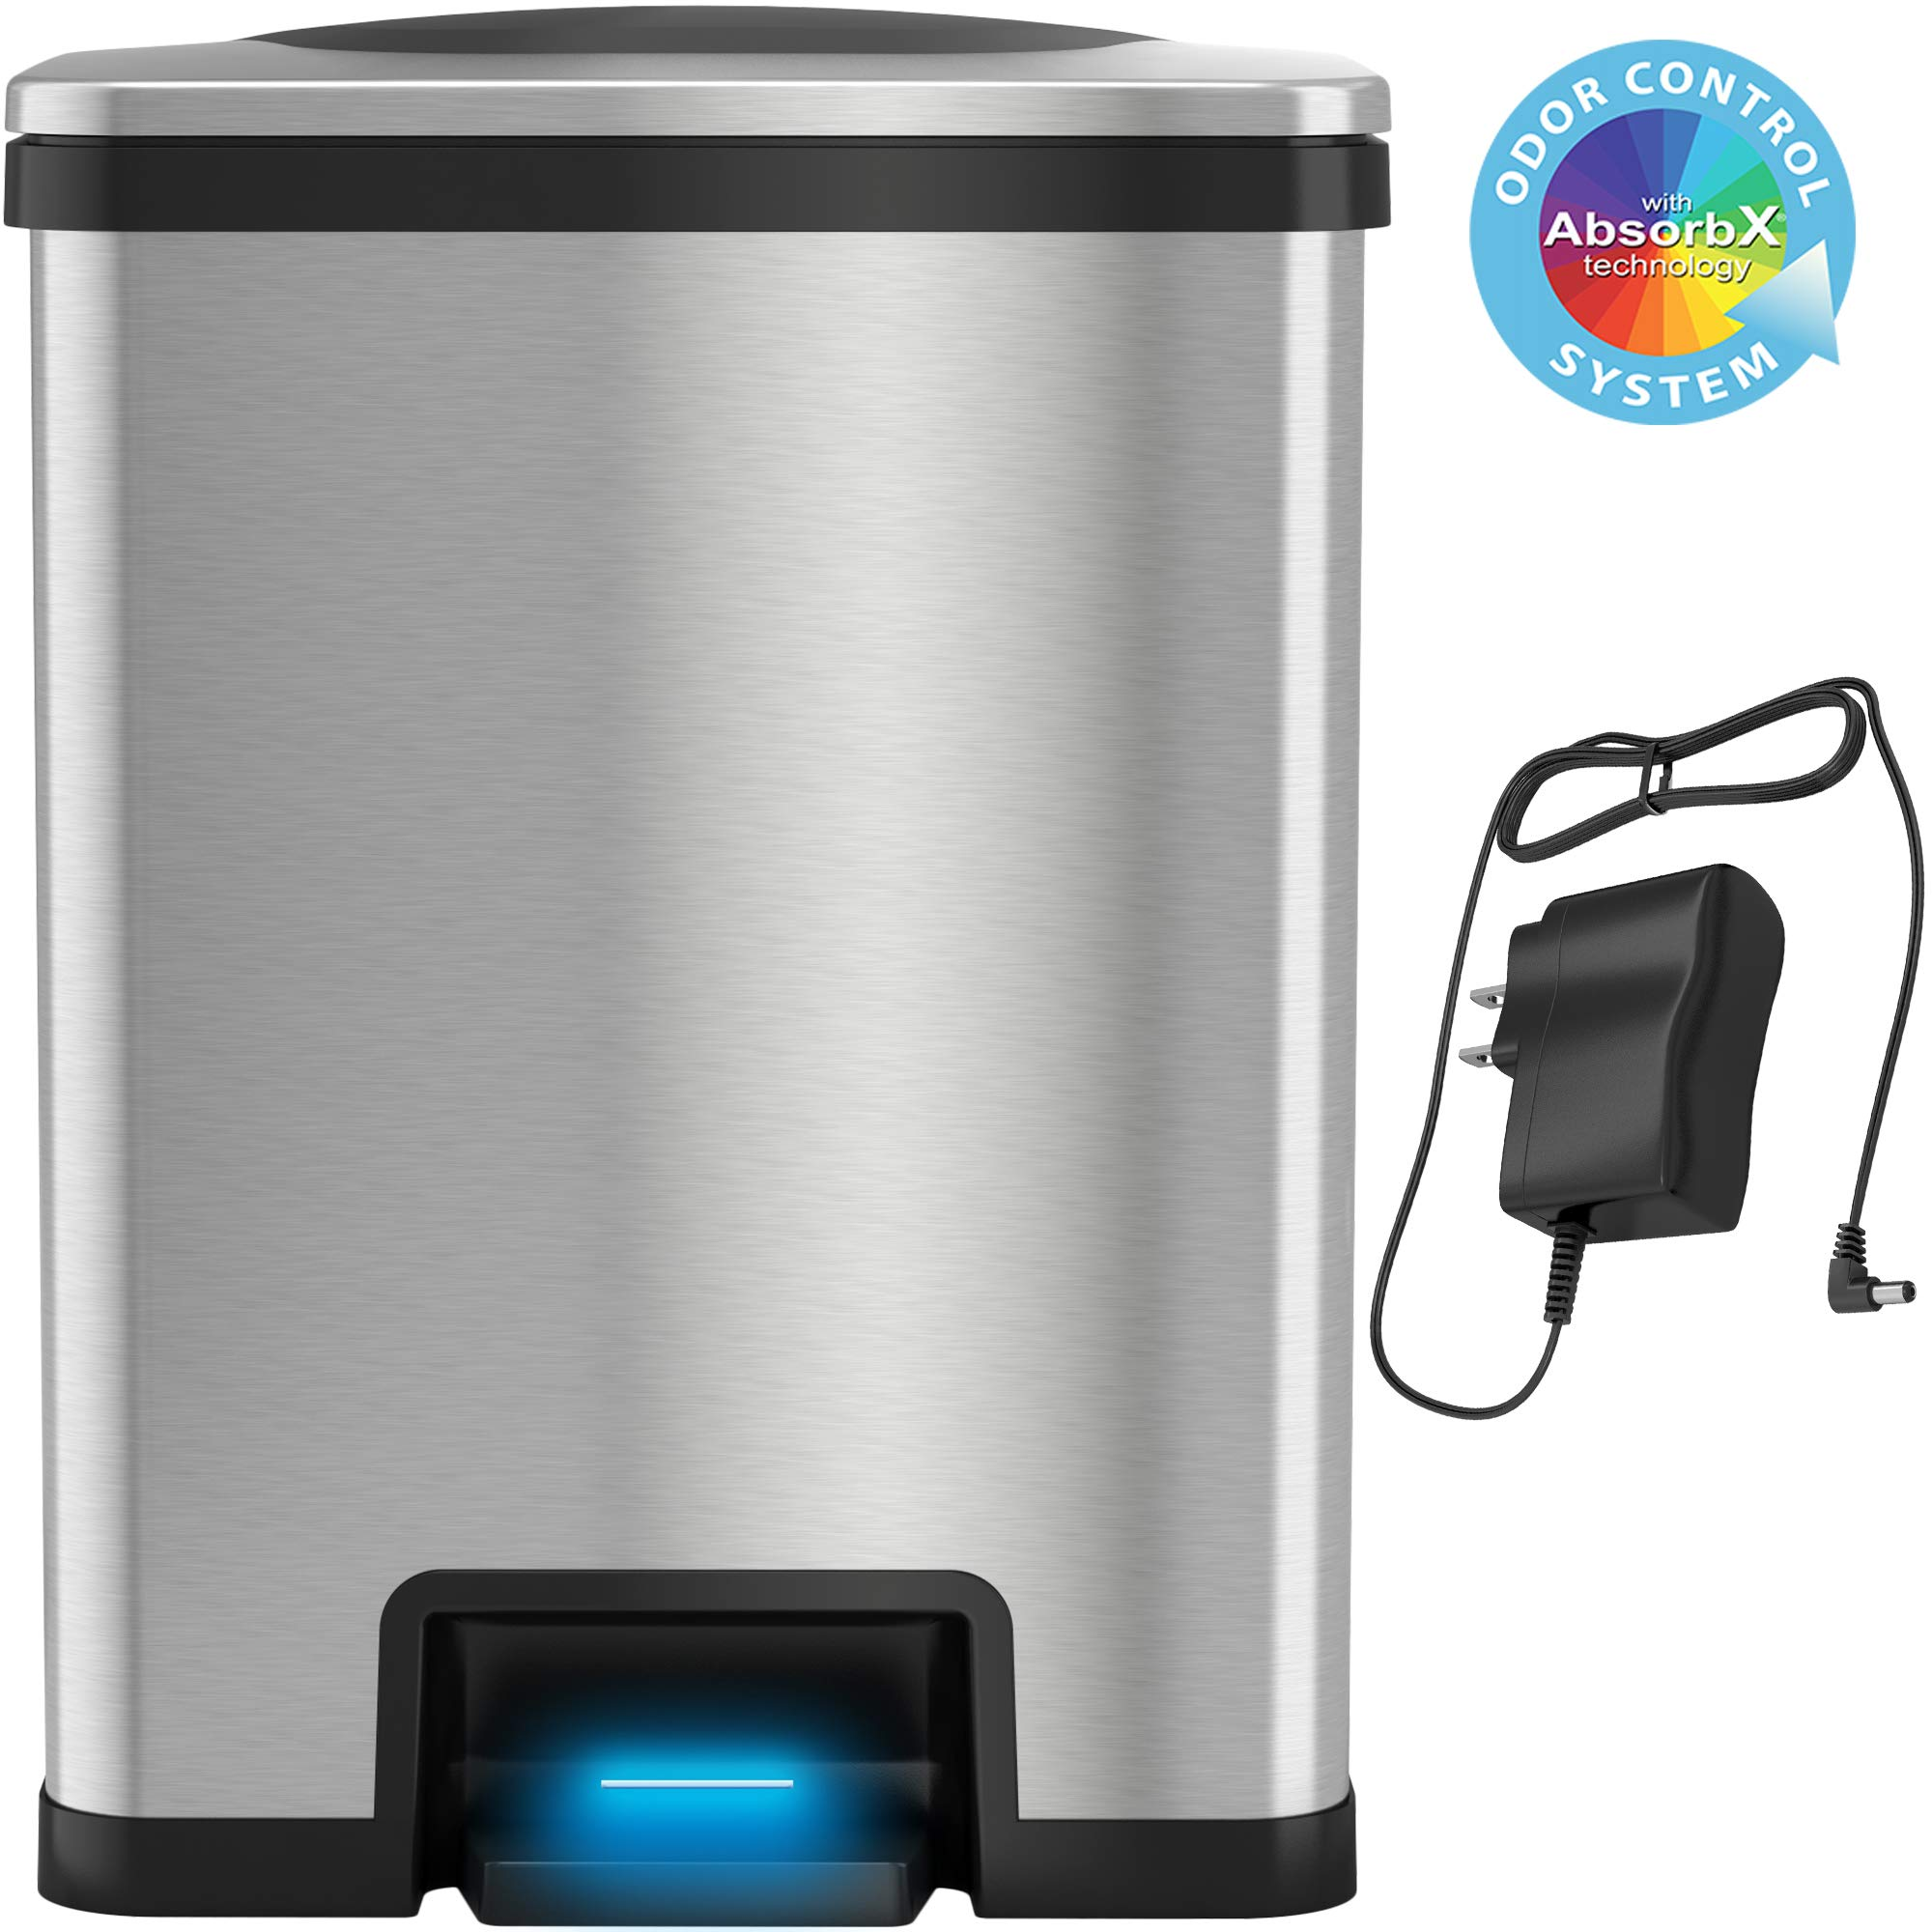 iTouchless AutoStep 13 Gallon Automatic Step Sensor Trash Can with AbsorbX Odor Control System and AC Adapter, Stainless Steel Kitchen Pedal Touchless Garbage Bin (Battery-Free Operation)